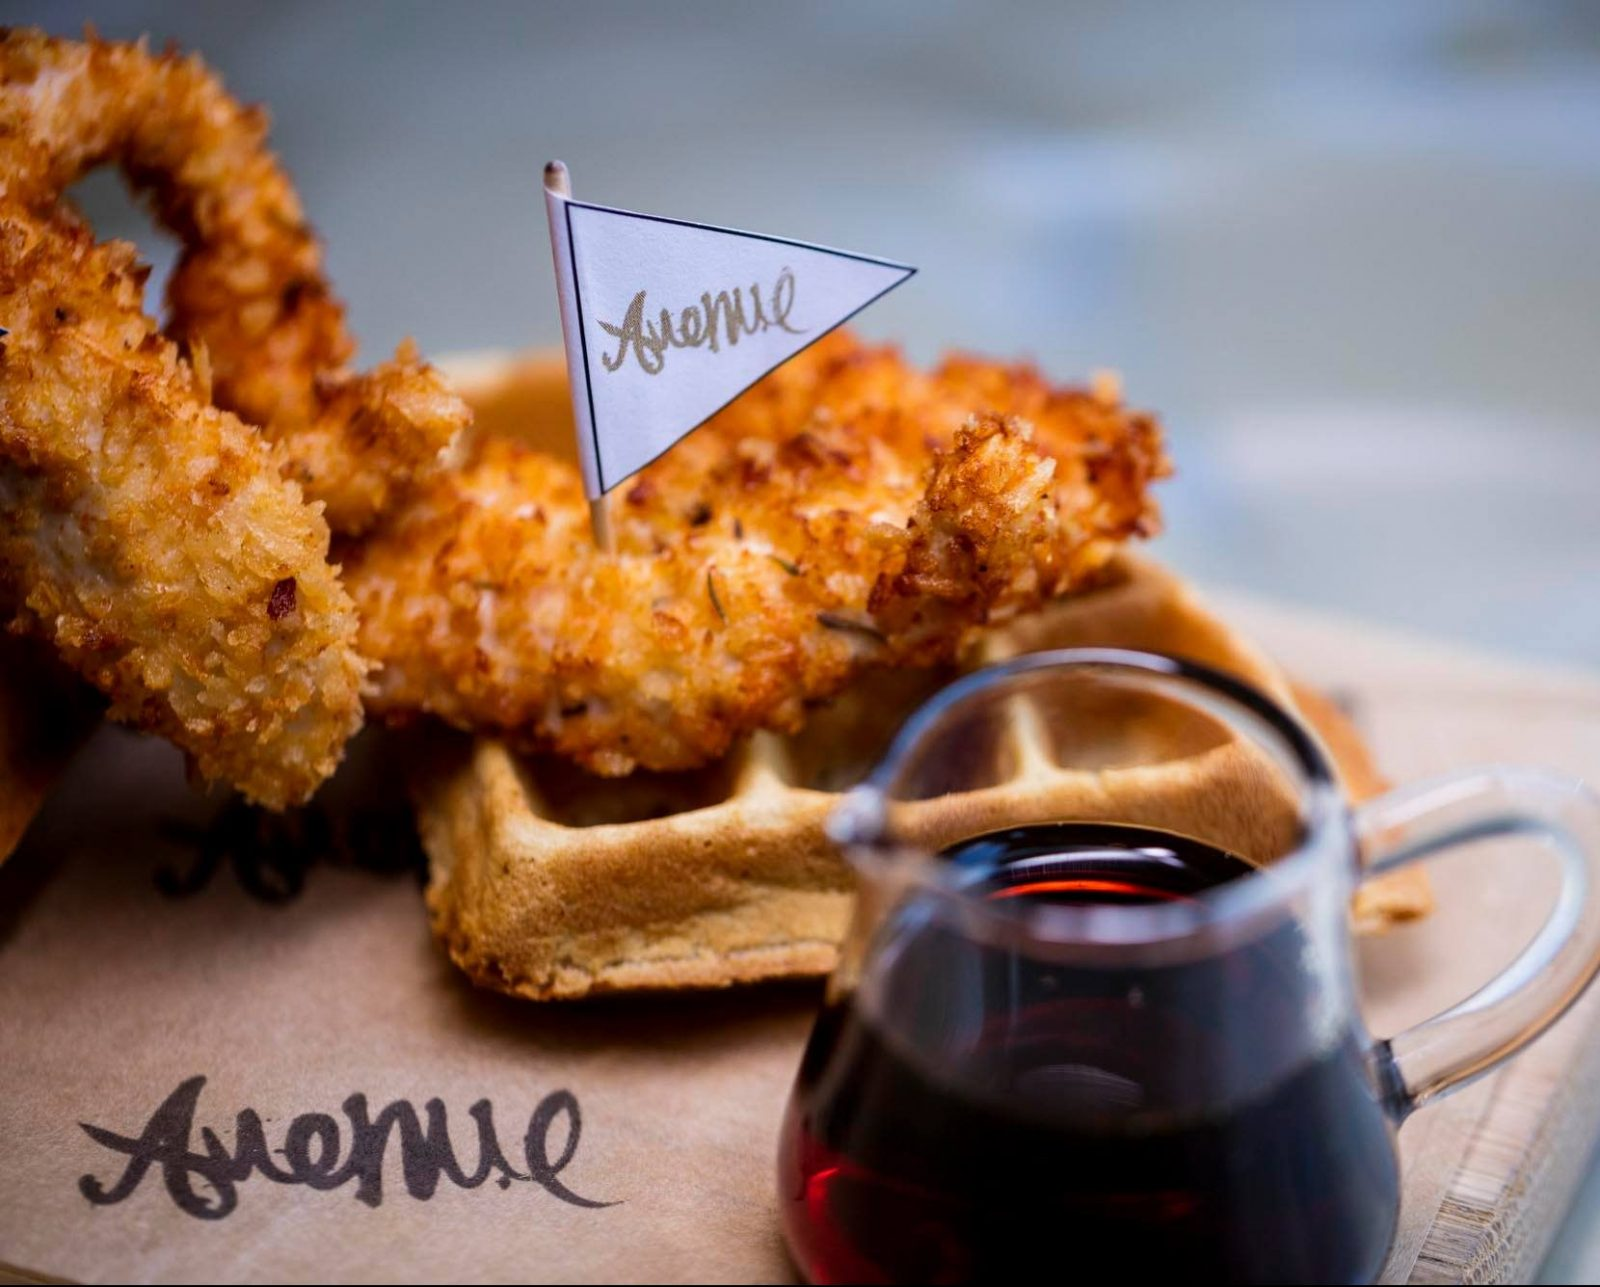 avenue restaurant london buttermilk chicken and waffle